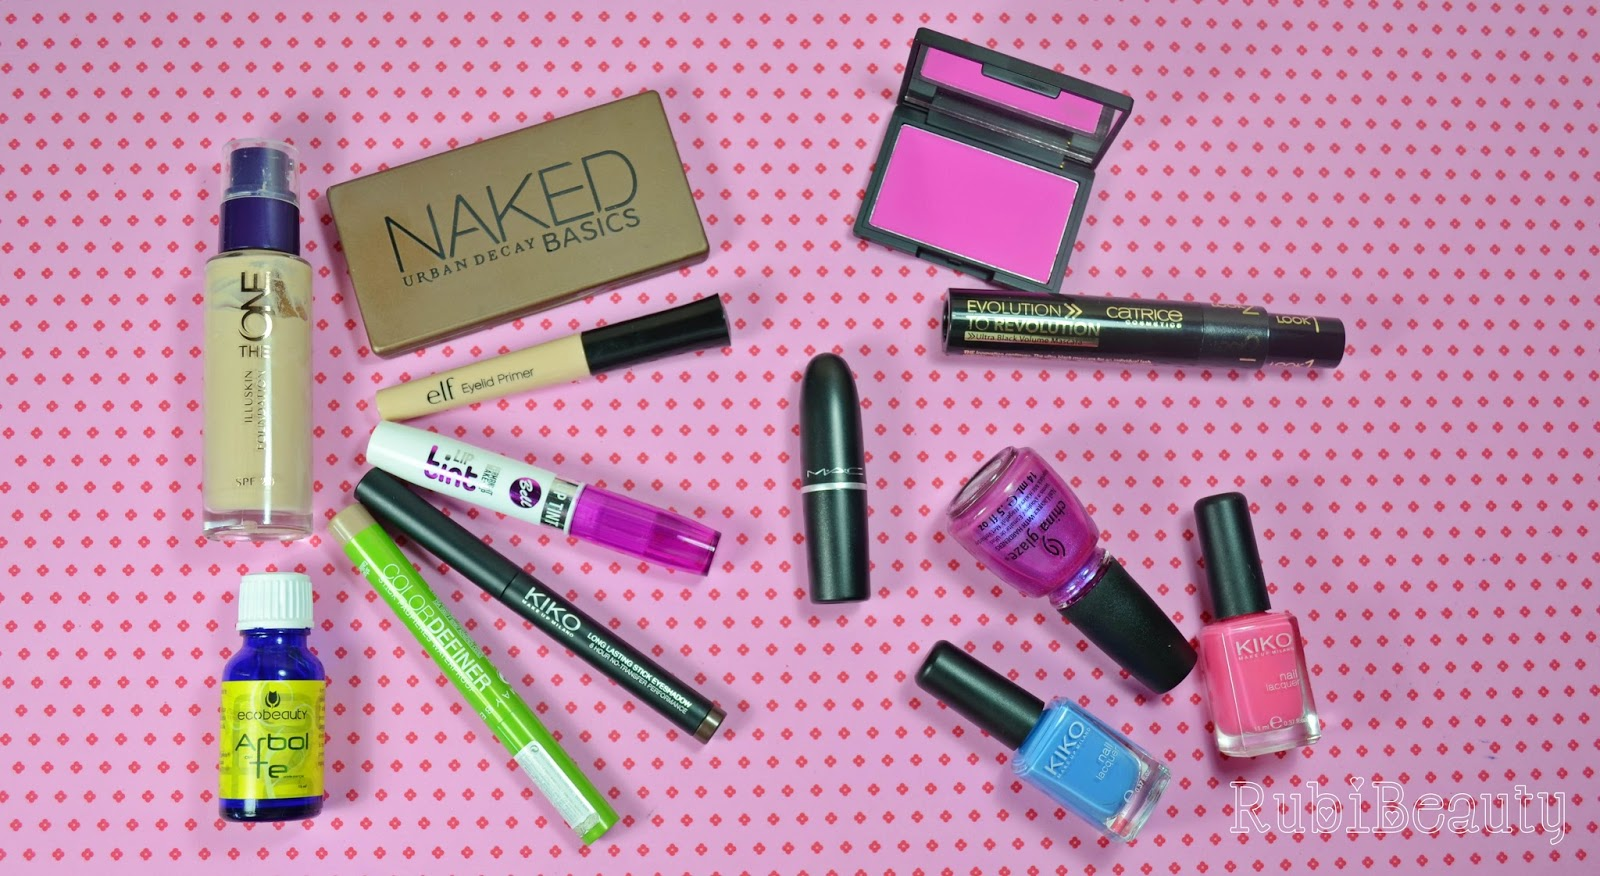 rubibeauty favoritos verano summer 2014 maquillaje uñas naked kiko bell MAC tea tree oil